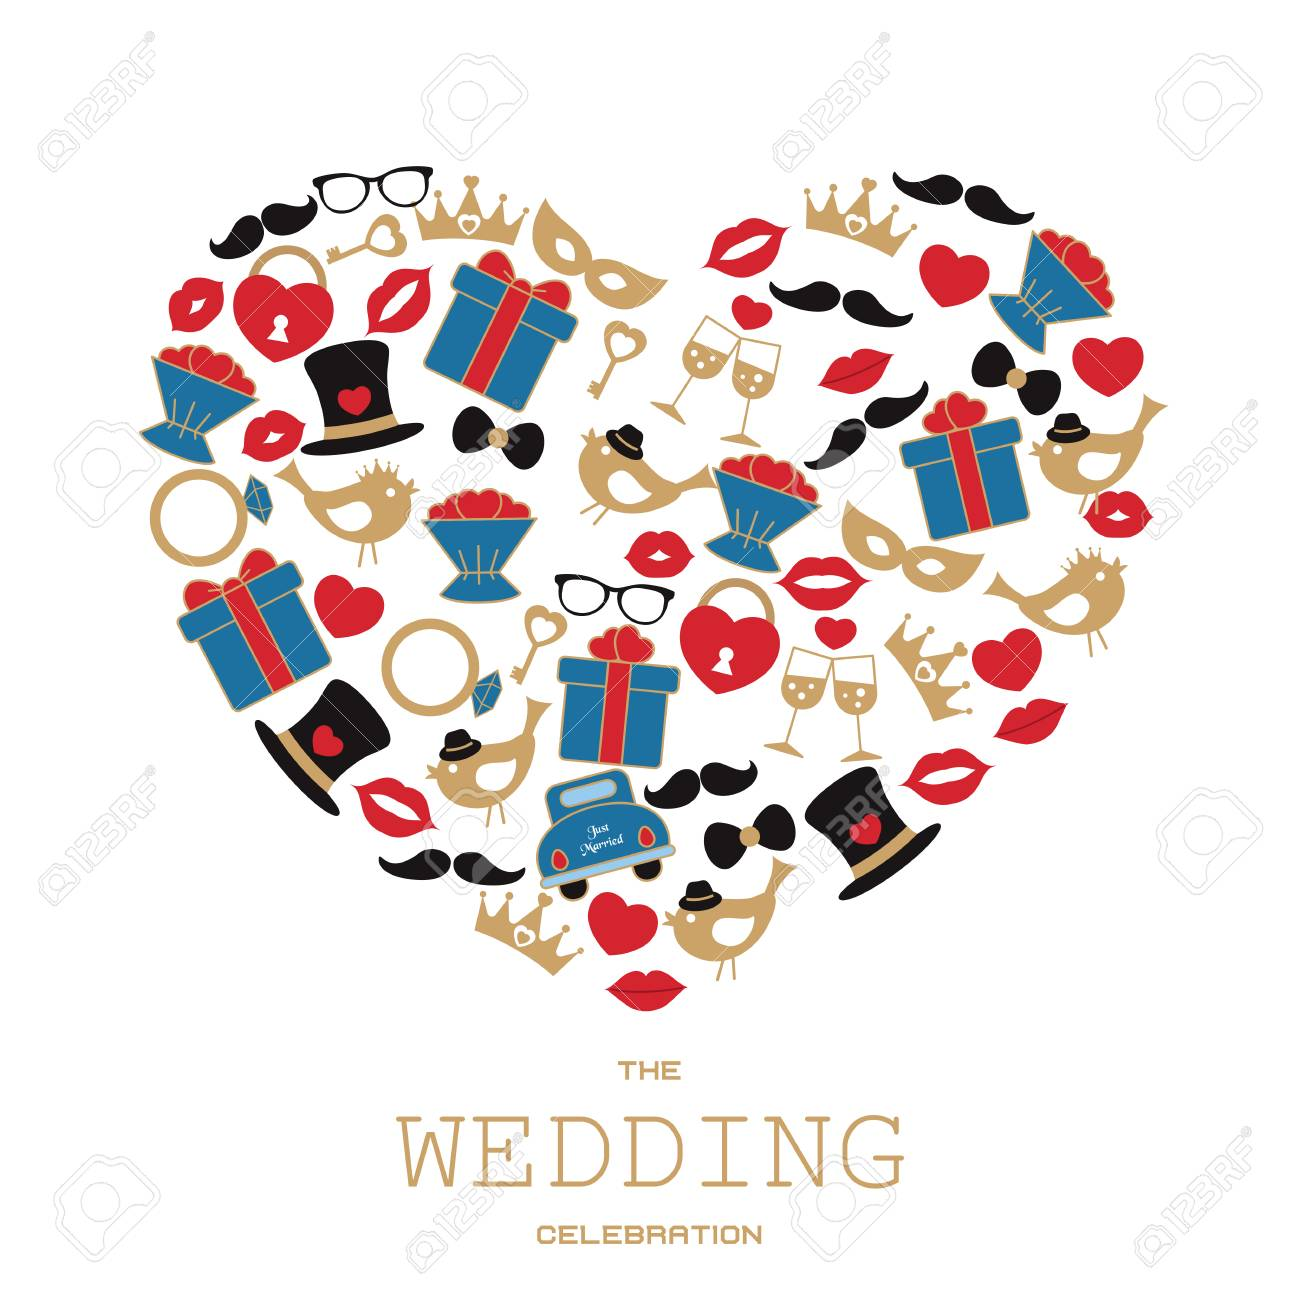 wedding vector background with wedding objects and icons can rh 123rf com wedding vector free wedding vector png